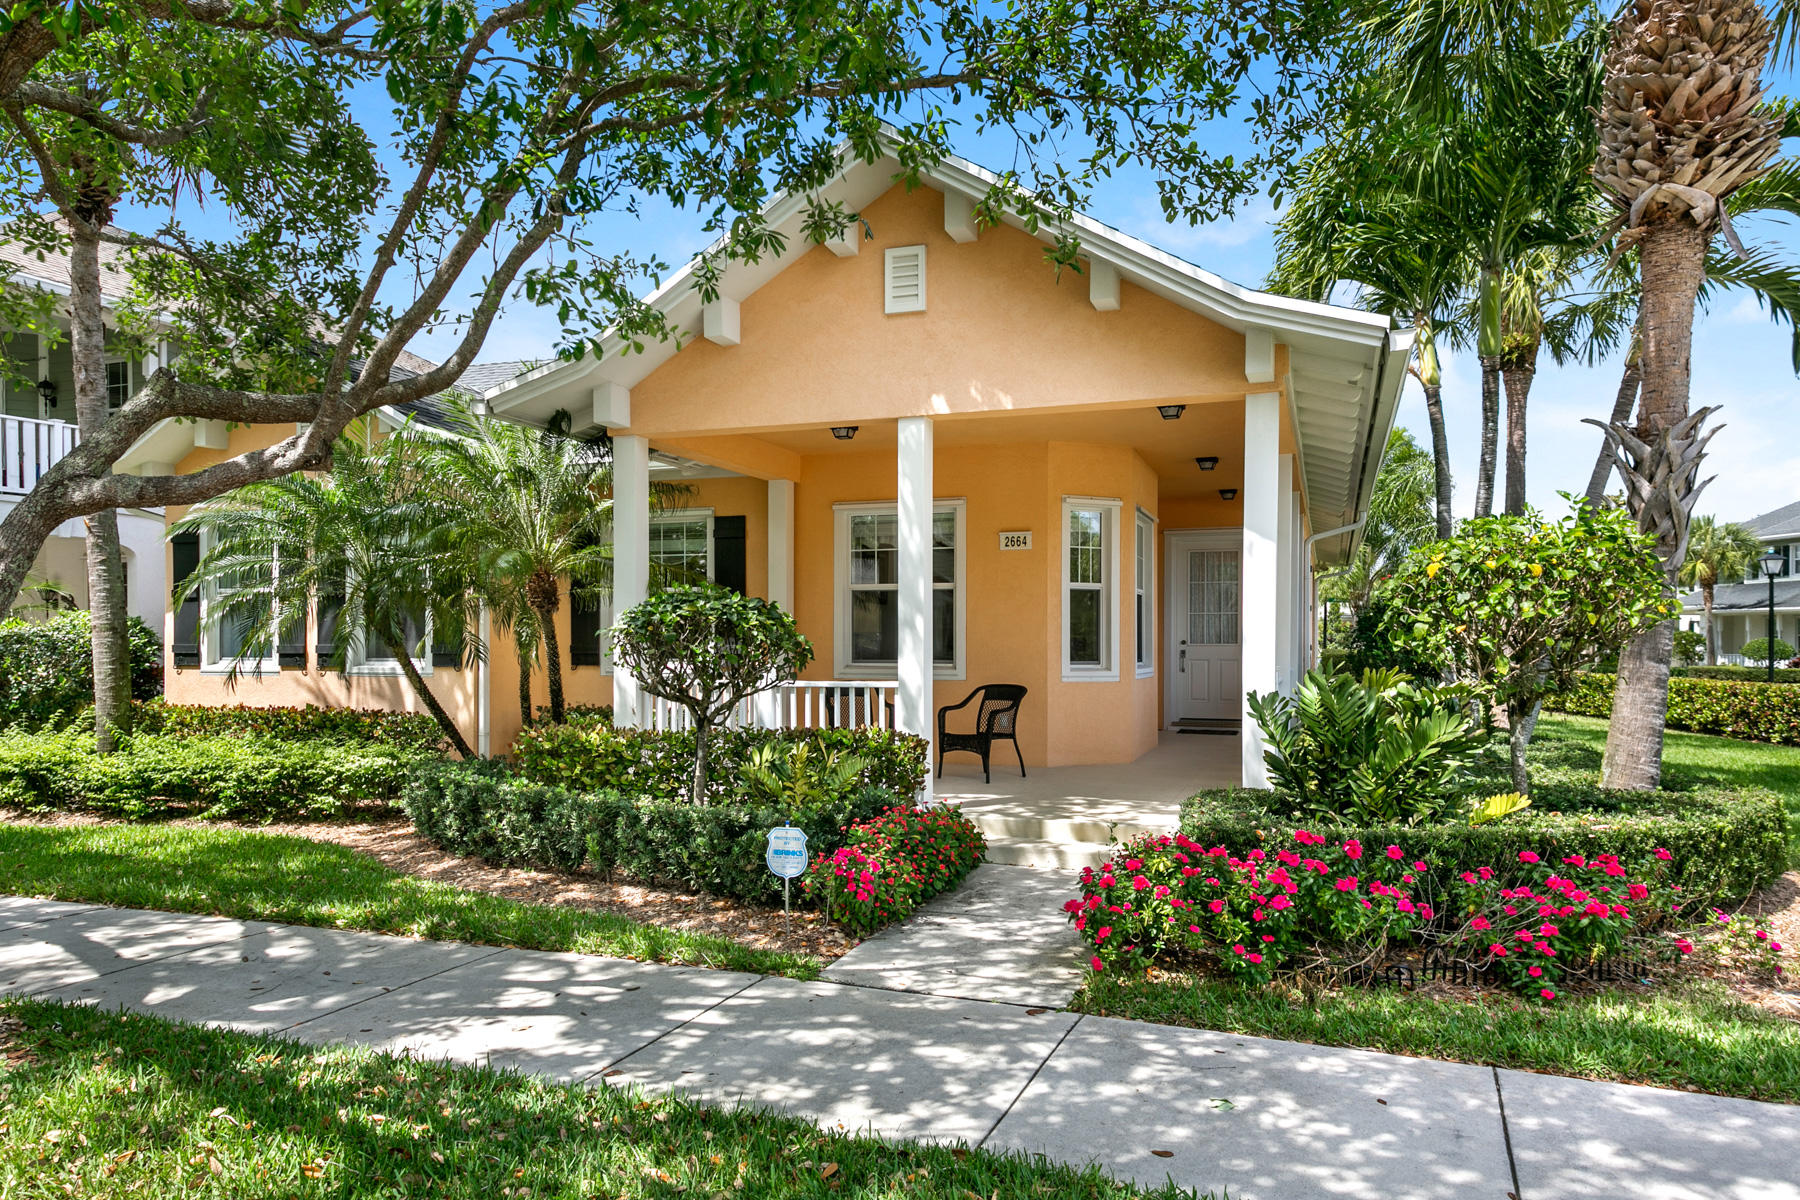 New Home for sale at 2664 Community Drive in Jupiter